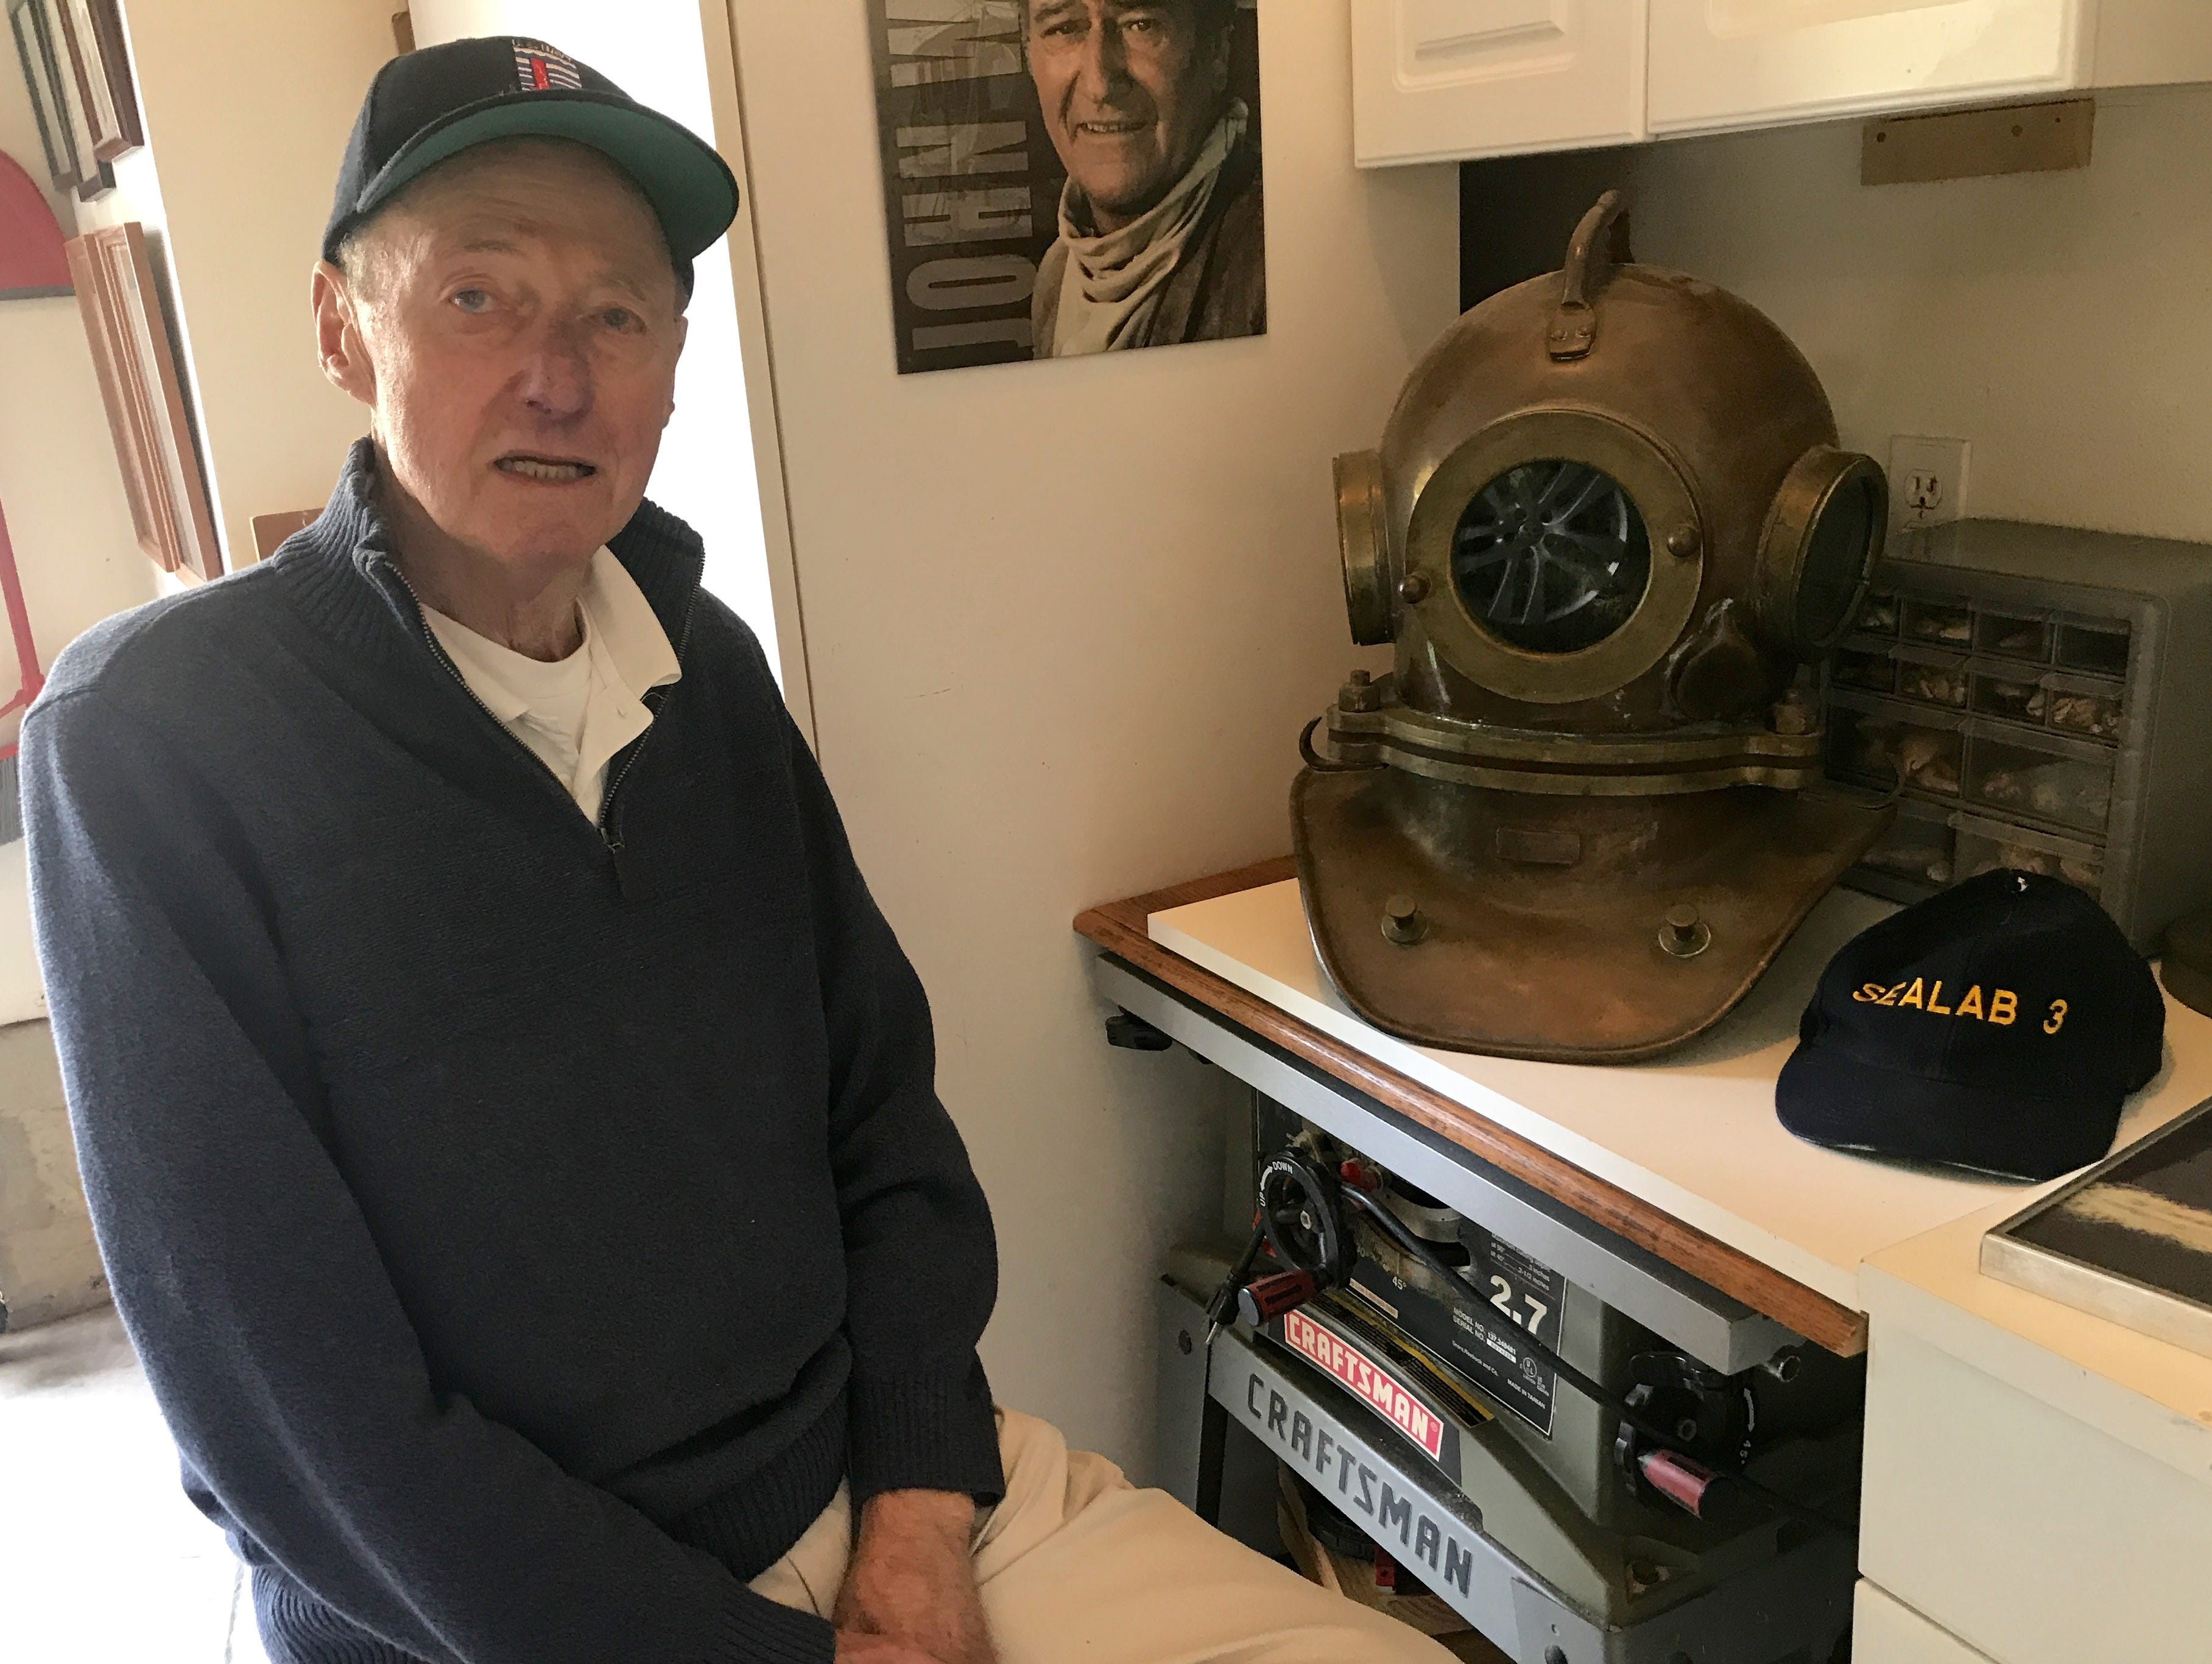 Former aquanaut Bob Bornholdt sits beside an old diving  helmet he trained in before joining the Sealab program in the 1960s.